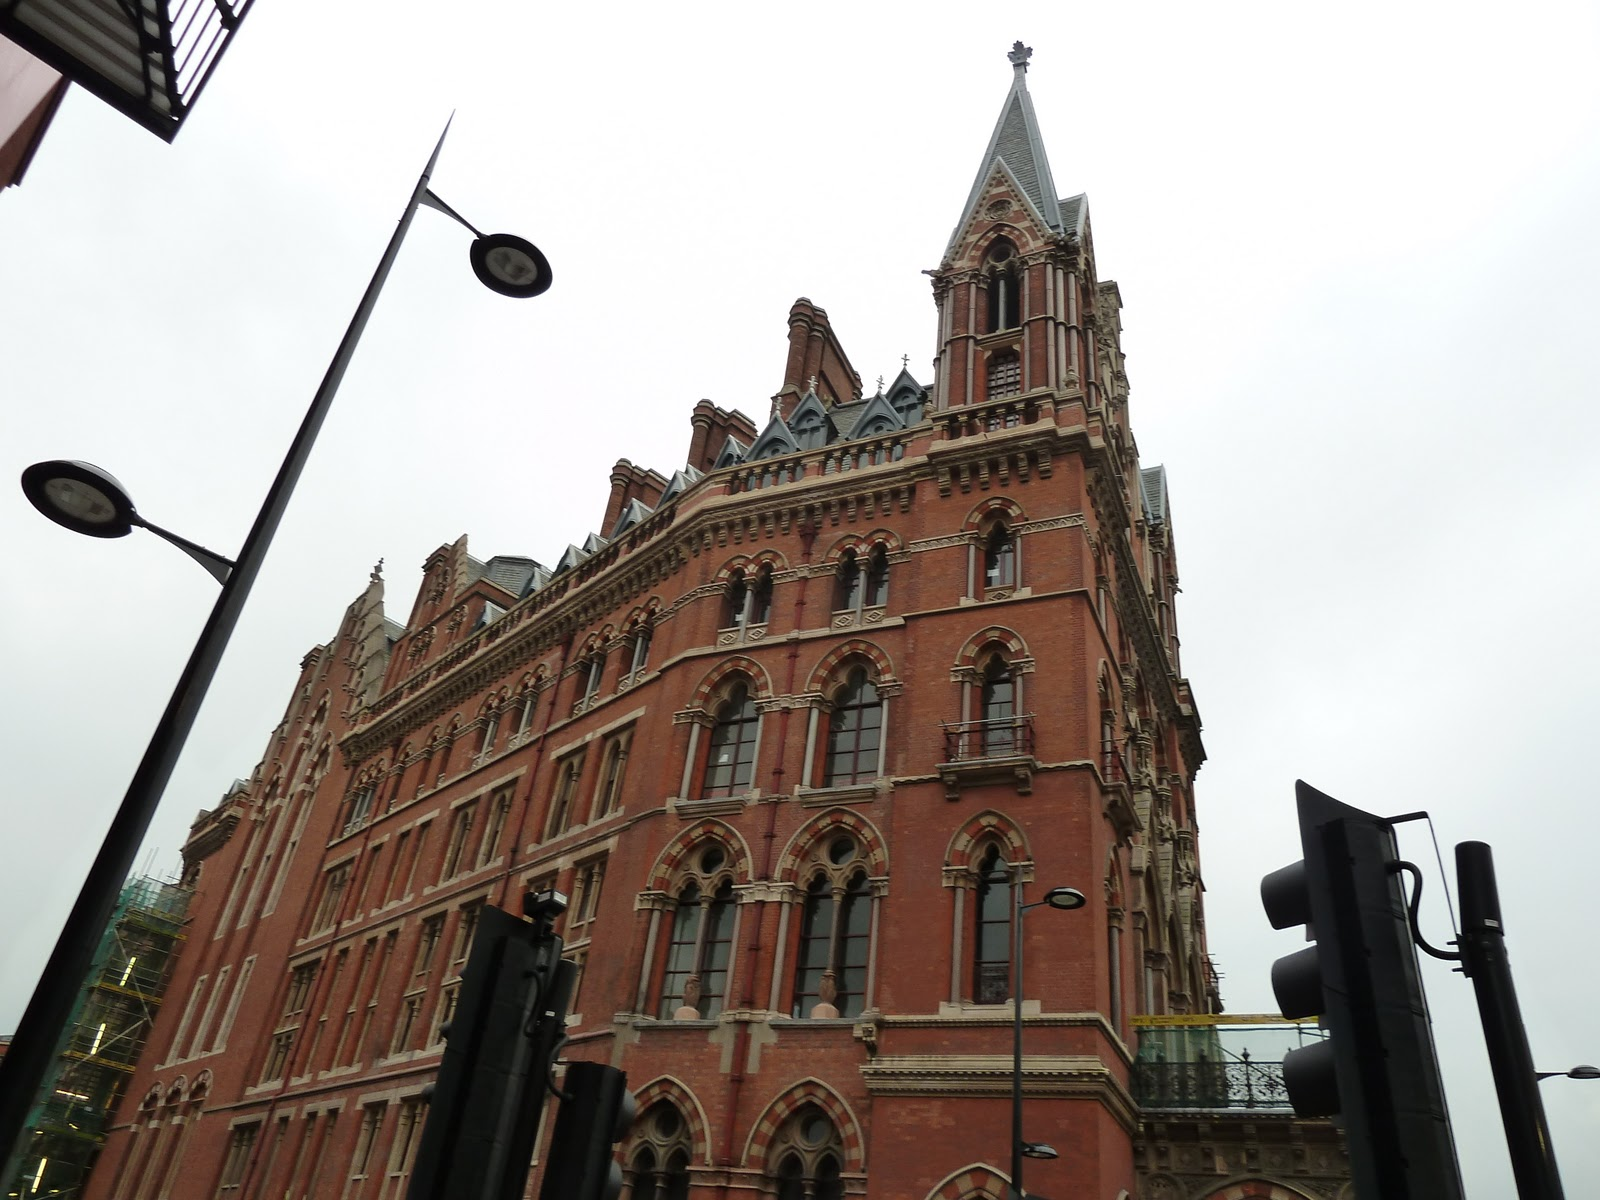 London Architecture, United Kingdom, St Pancras facade